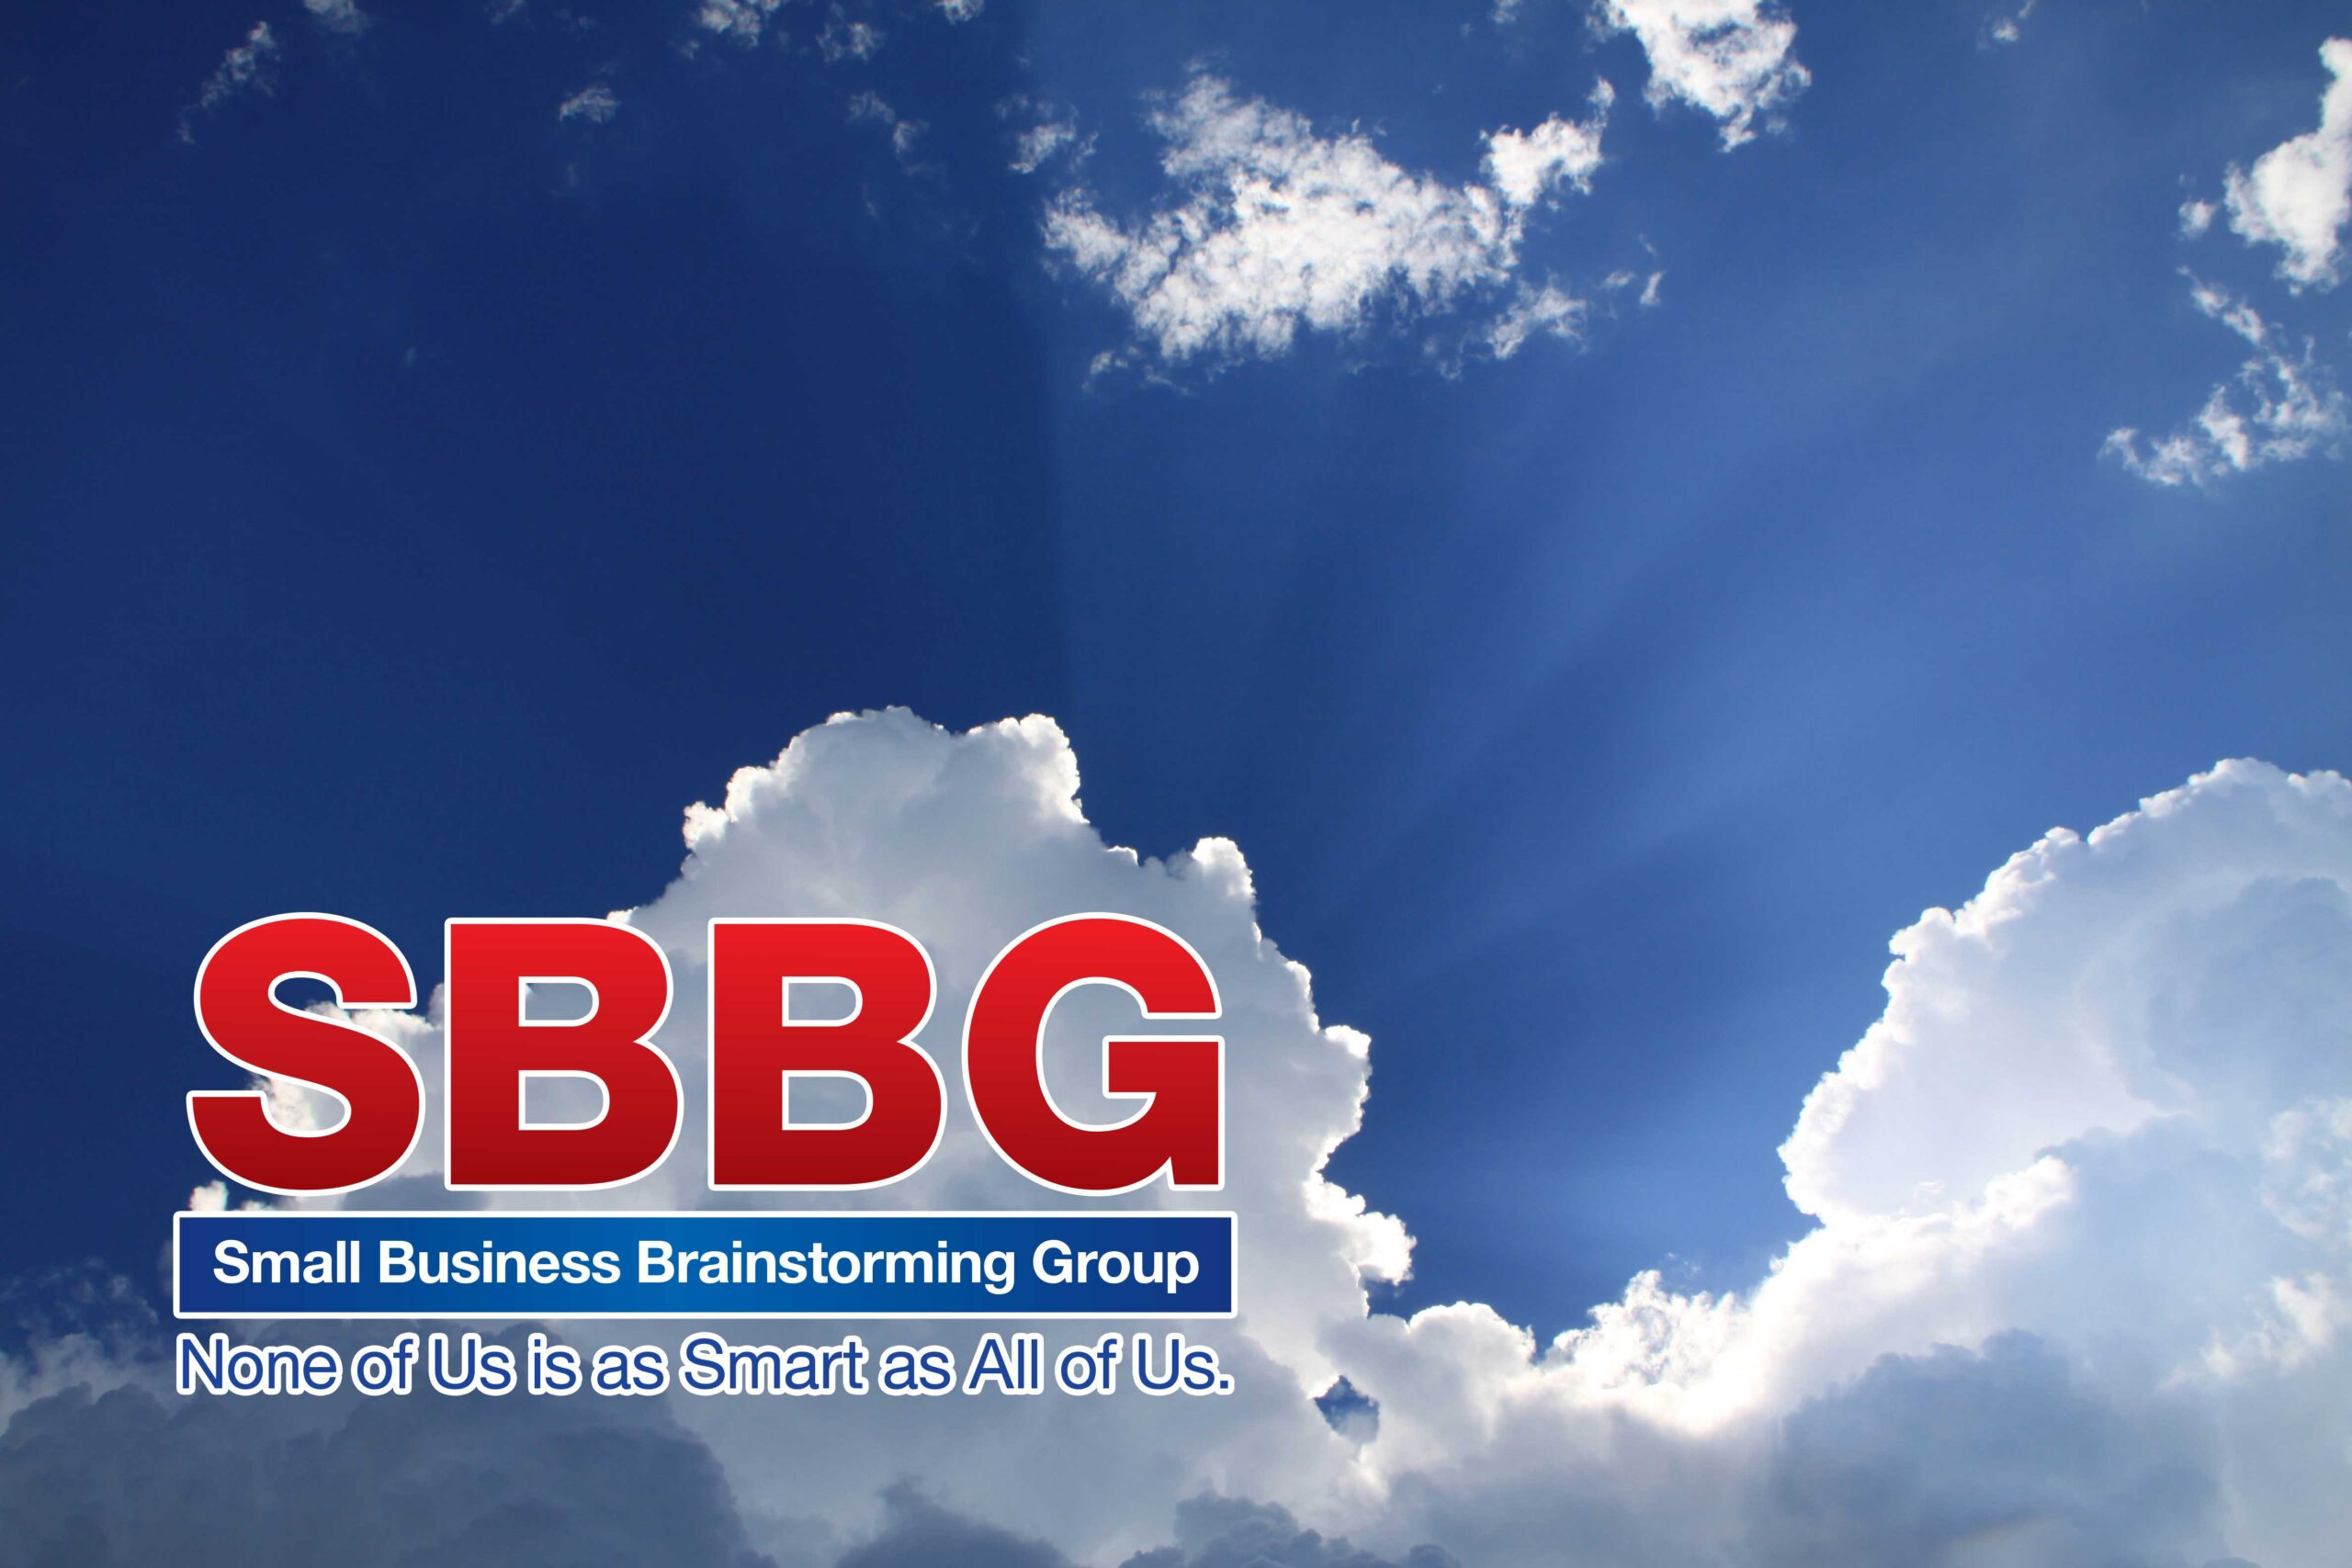 Small Business Brainstorming Group